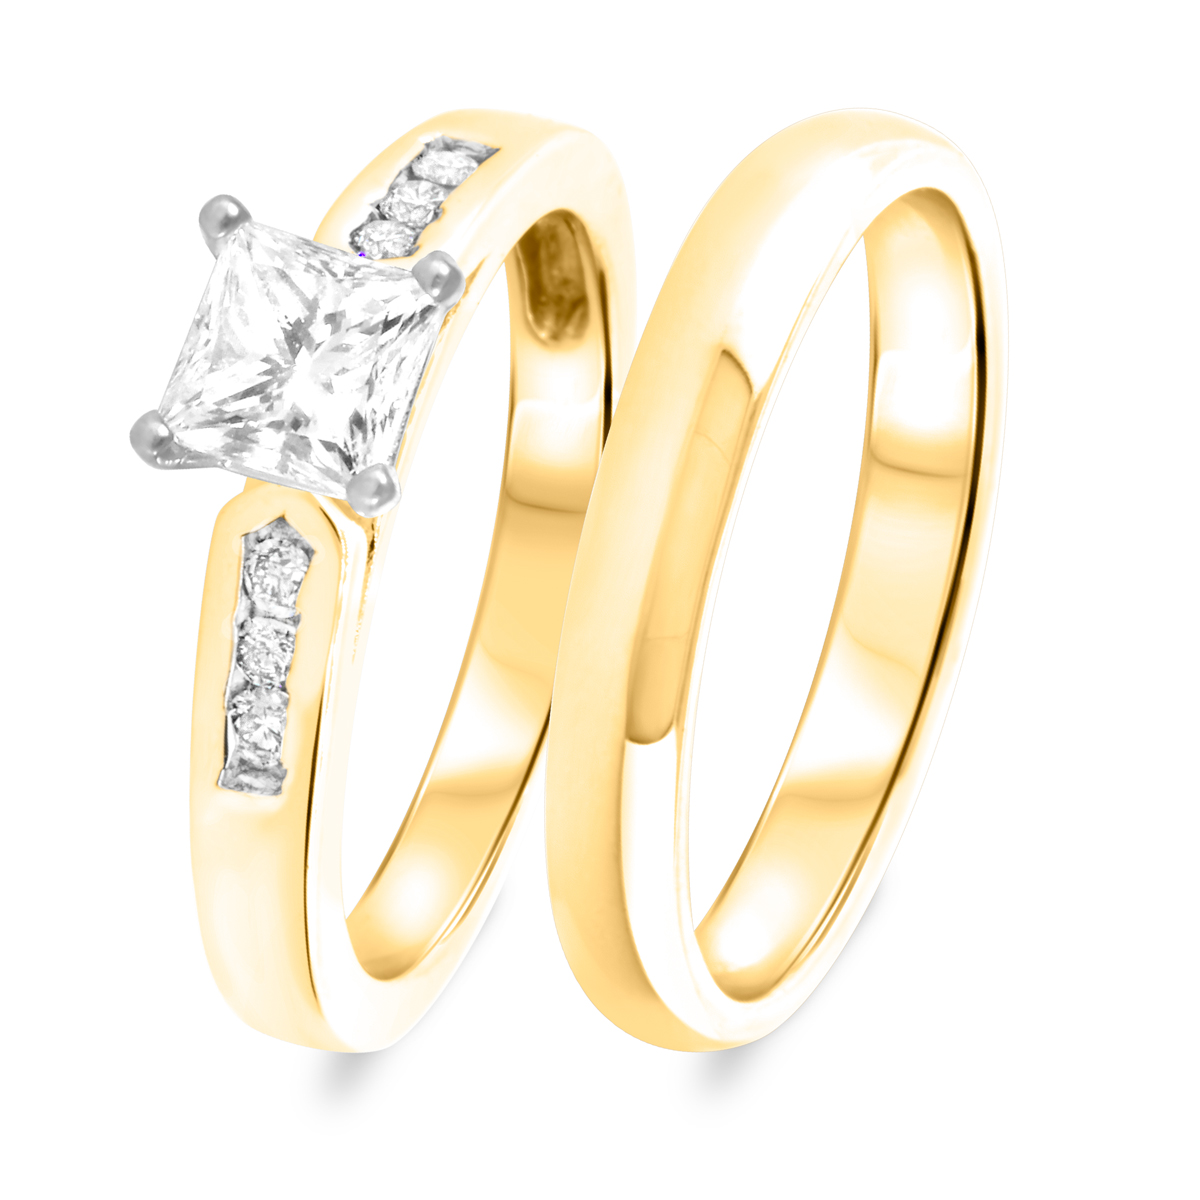 1 1/4 CT. T.W. Diamond Women's Bridal Wedding Ring Set 14K Yellow Gold